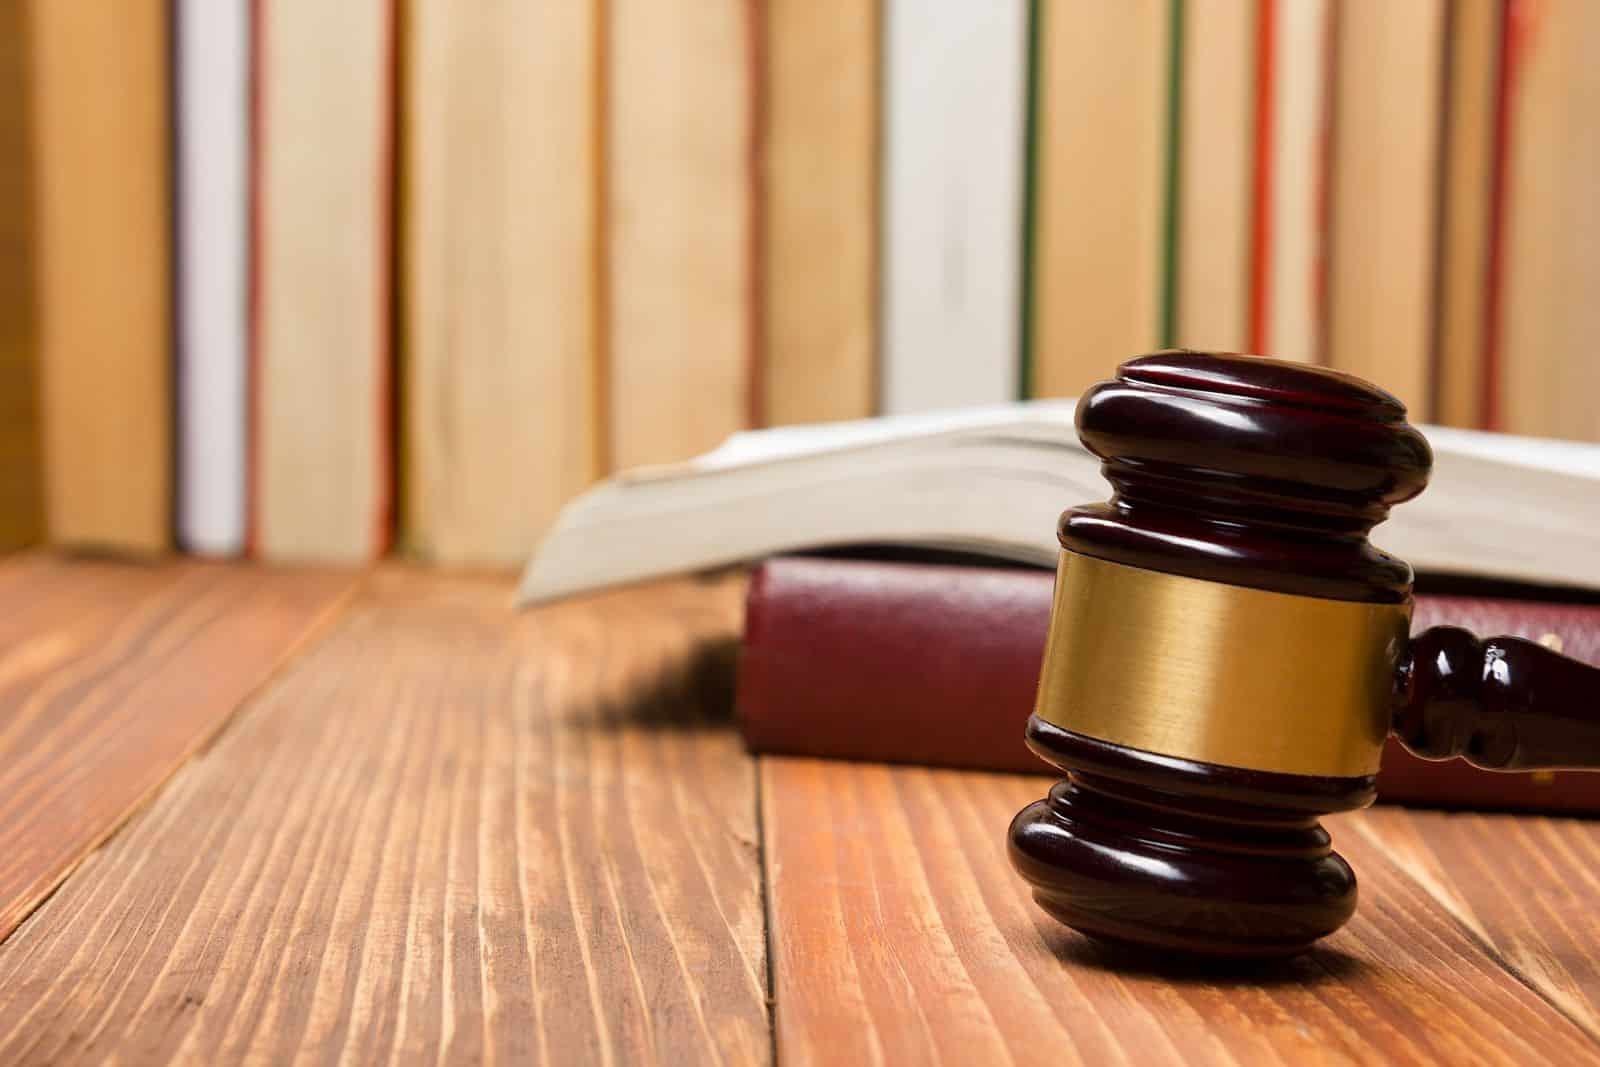 bigstock Law book with wooden judges ga 121691573 1 - Samsung Announces Battery Replacement Program for Exploding Note 7